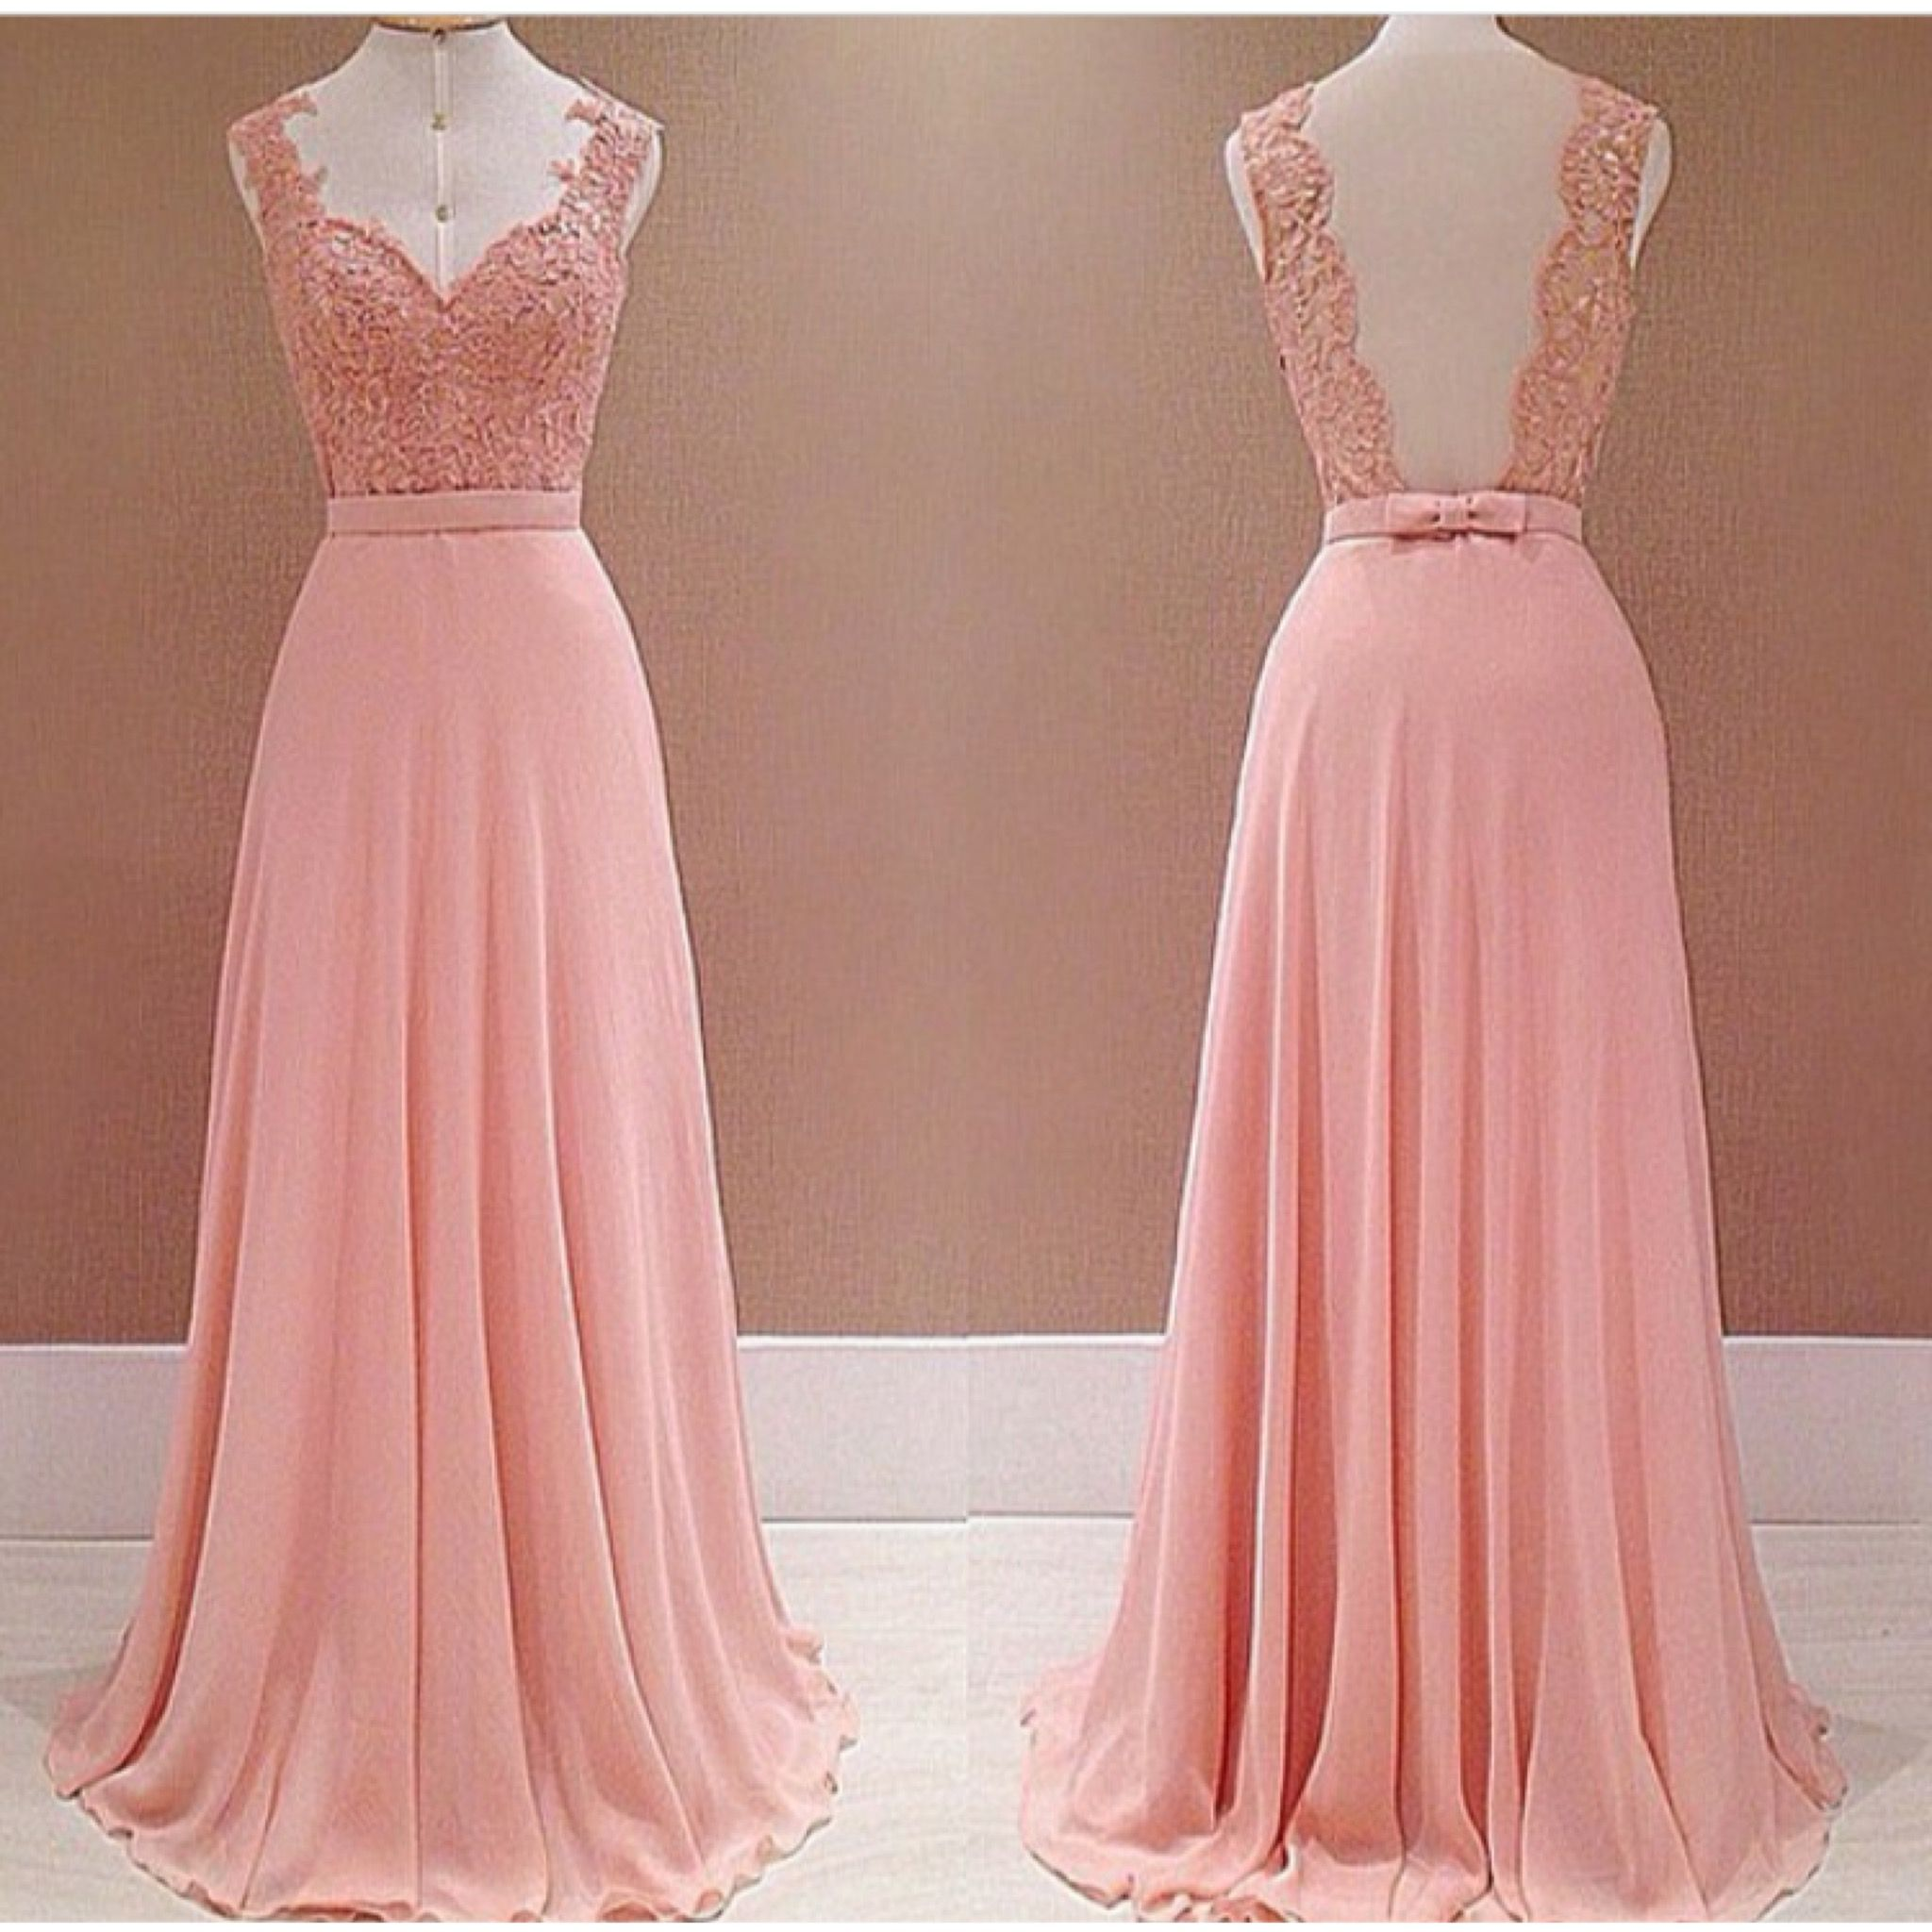 Pin by yolesky on pinterest prom gowns and homecoming